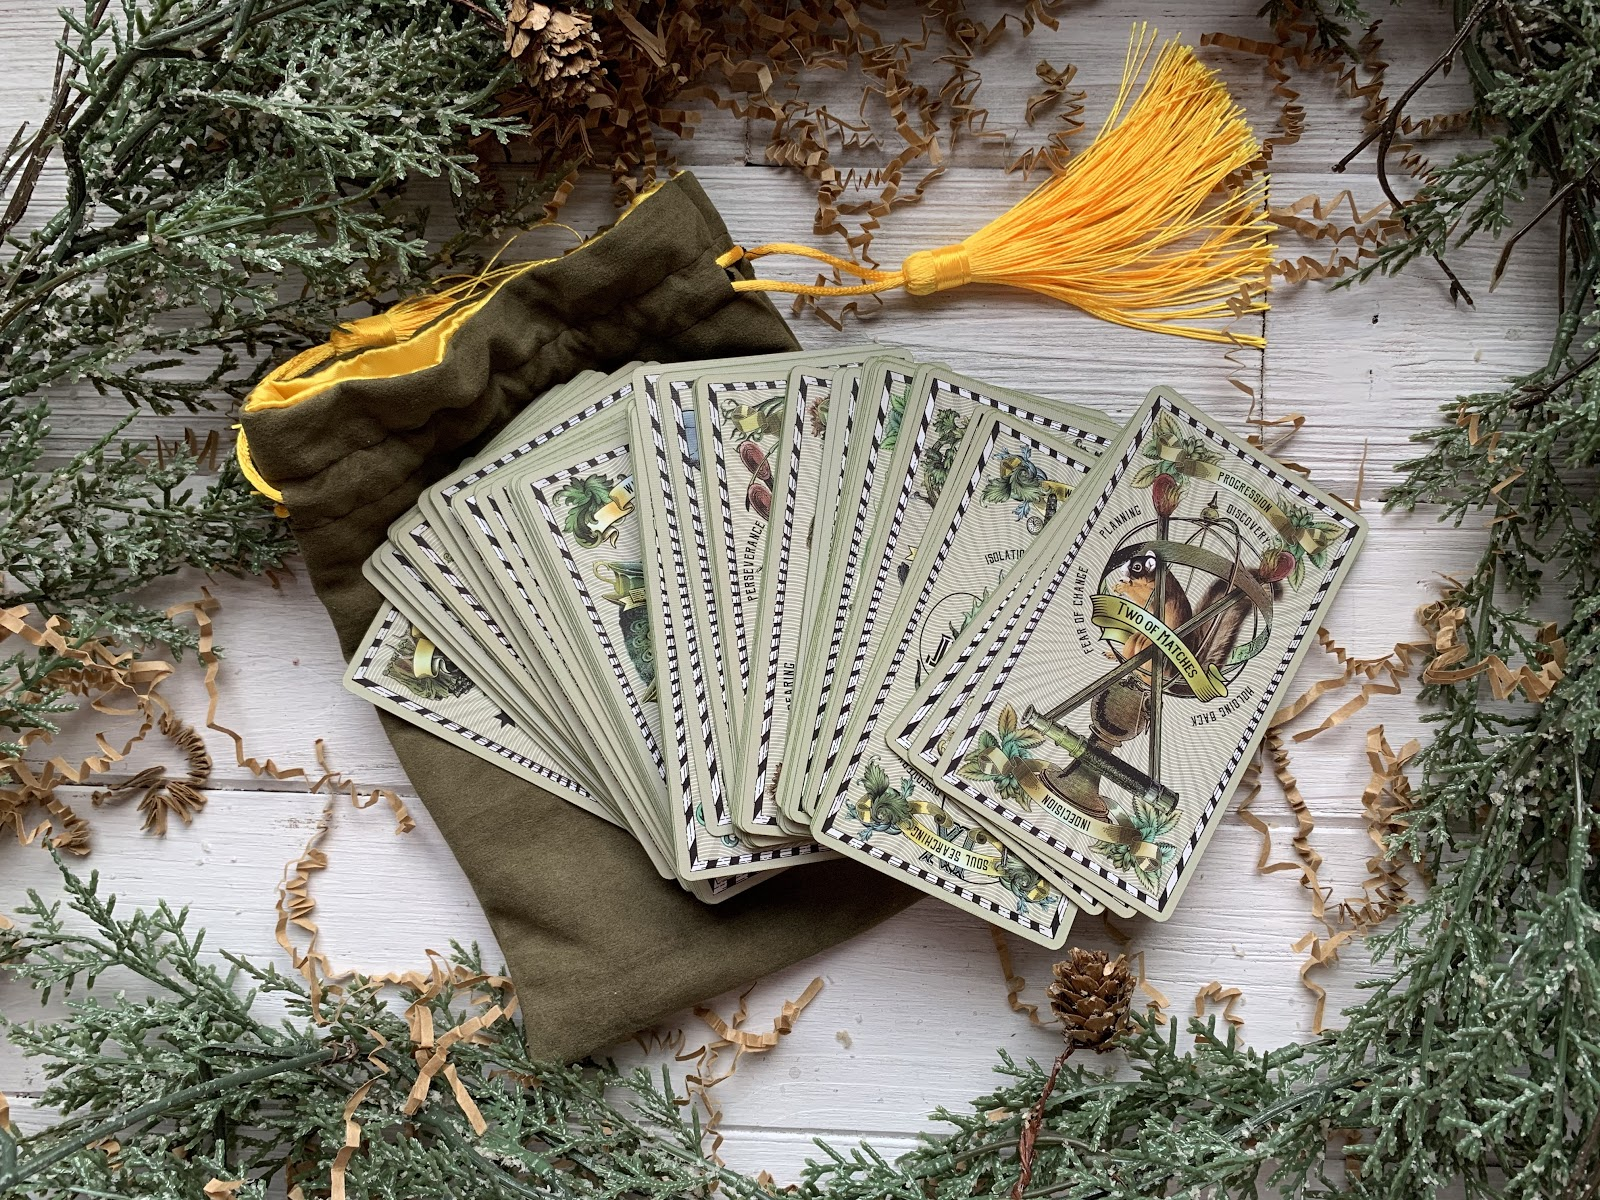 Green tarot cards from the 5-Cent Tarot Deck fanned out and surrounded by tree branches.